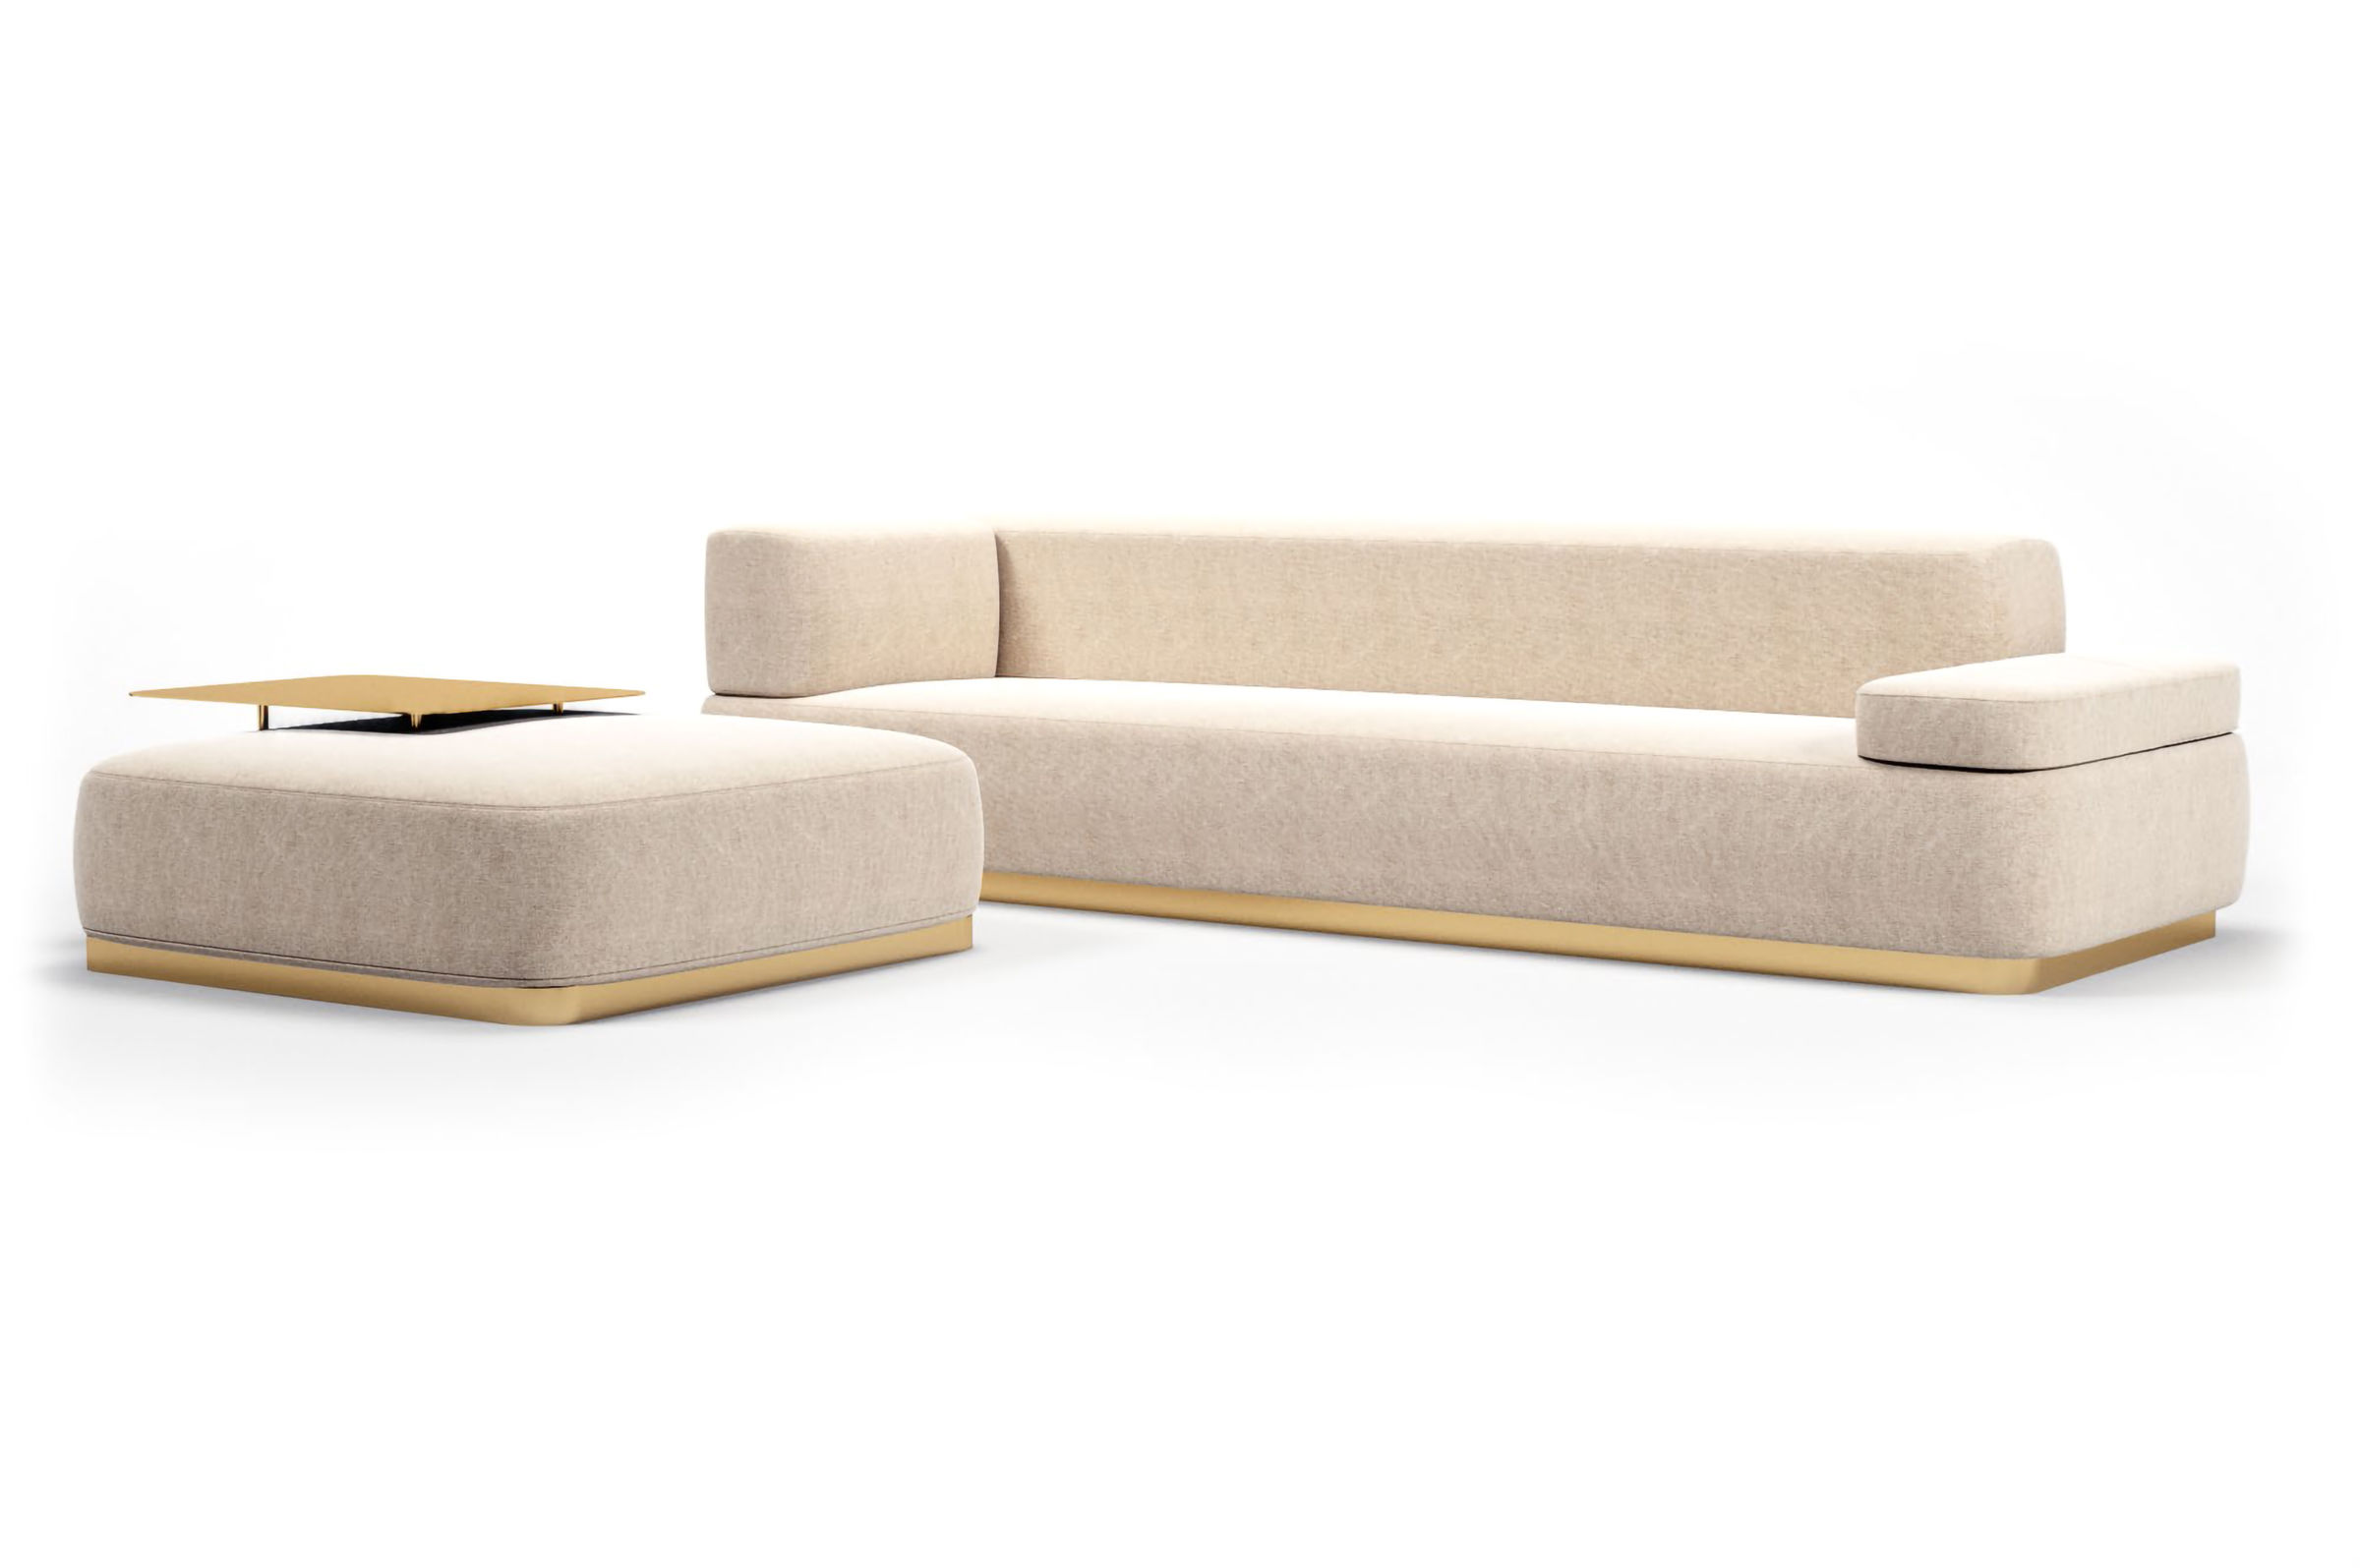 Alpha Sofa Group Sofa V255 By Formitalia Luxury Group Spa Archello